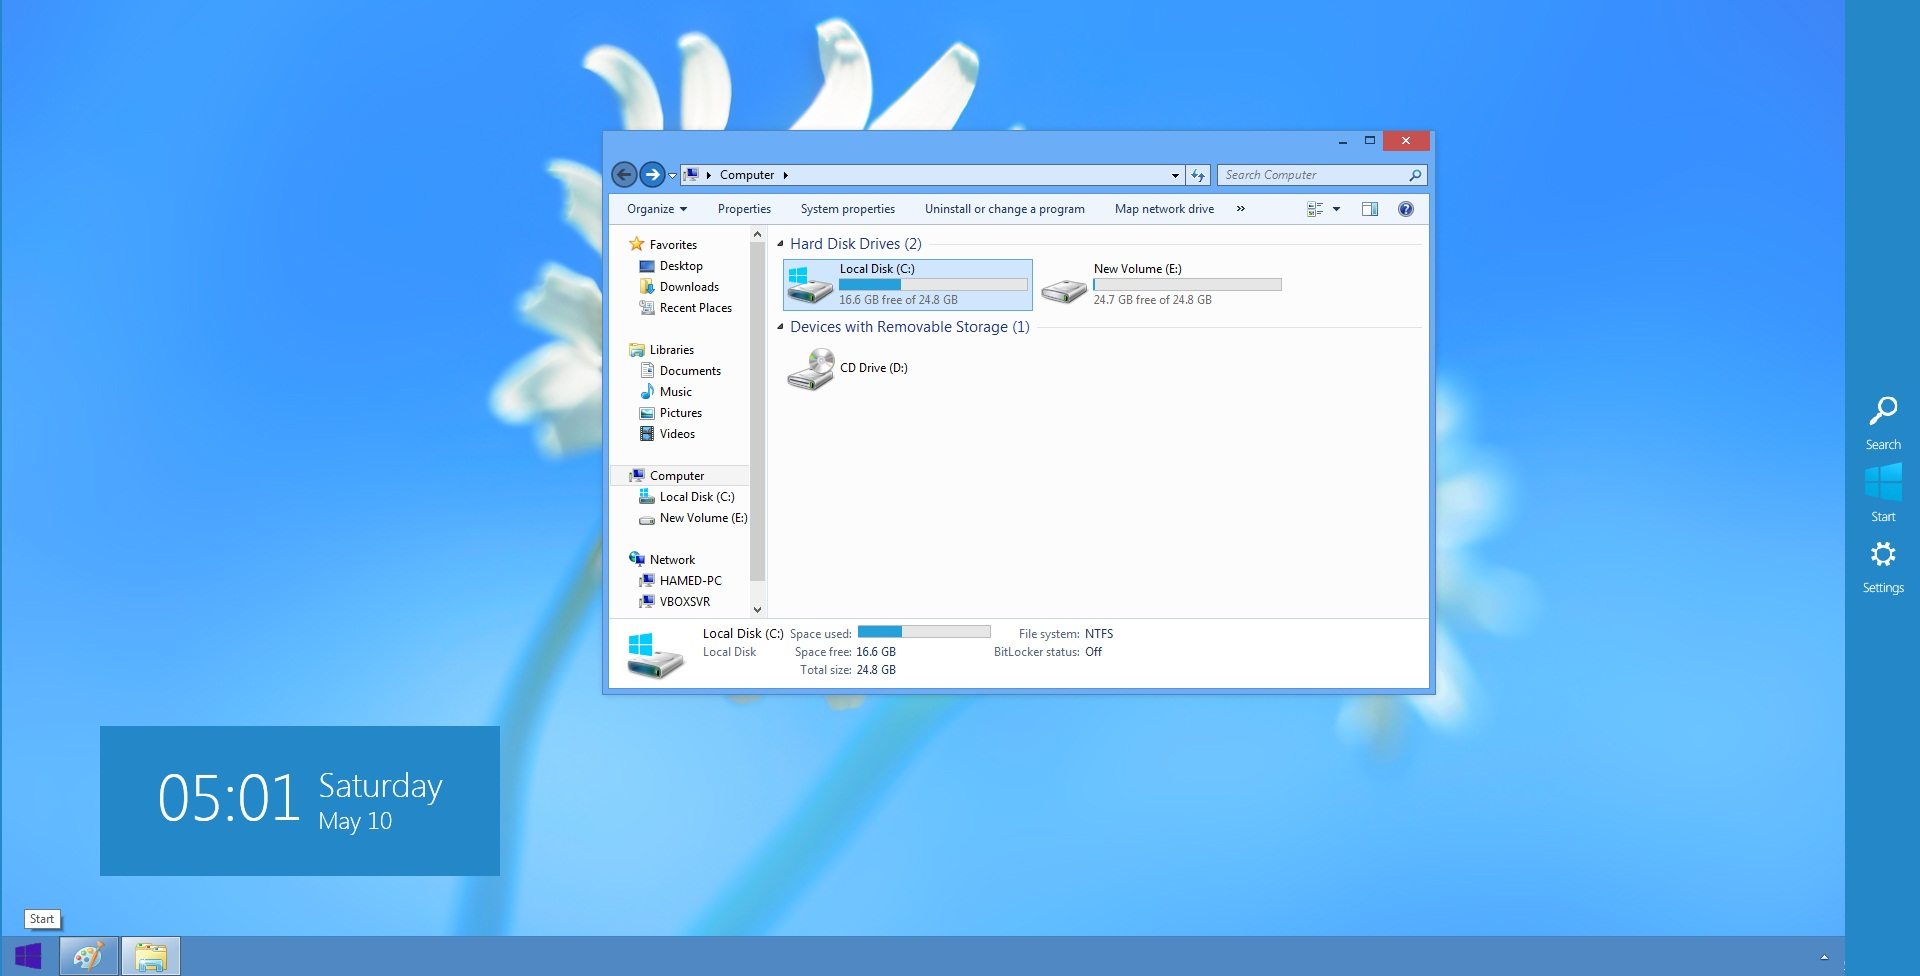 Win8.1 SkinPack 2.0 for Win7 released